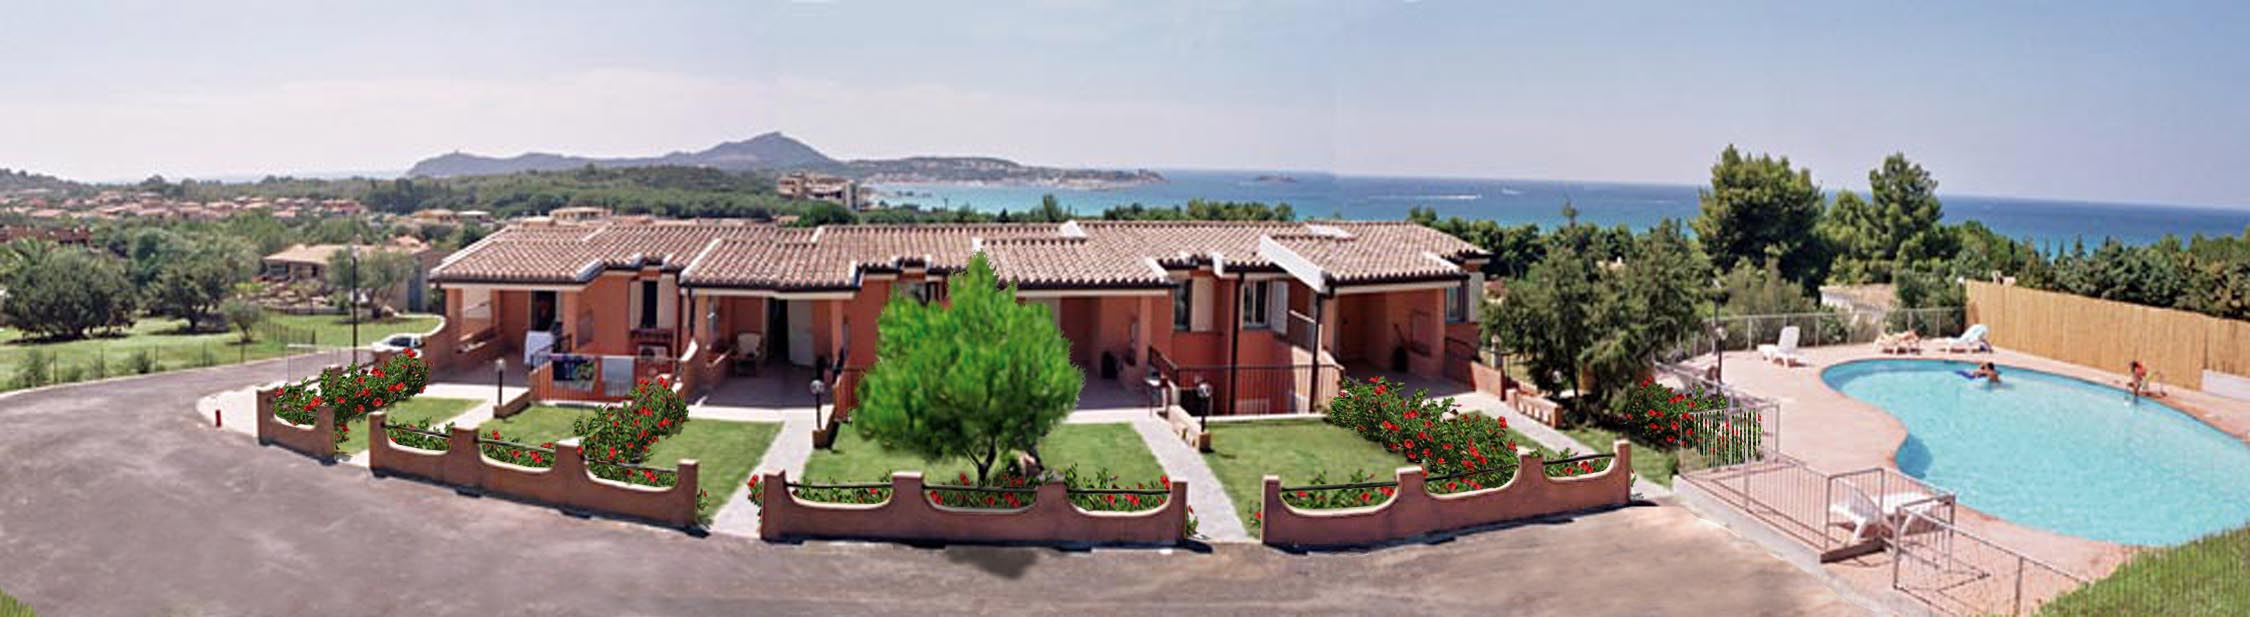 Book one of the detatched houses of the Residence la Chimera in Villasimius, for a relaxing holidays in Sardinia